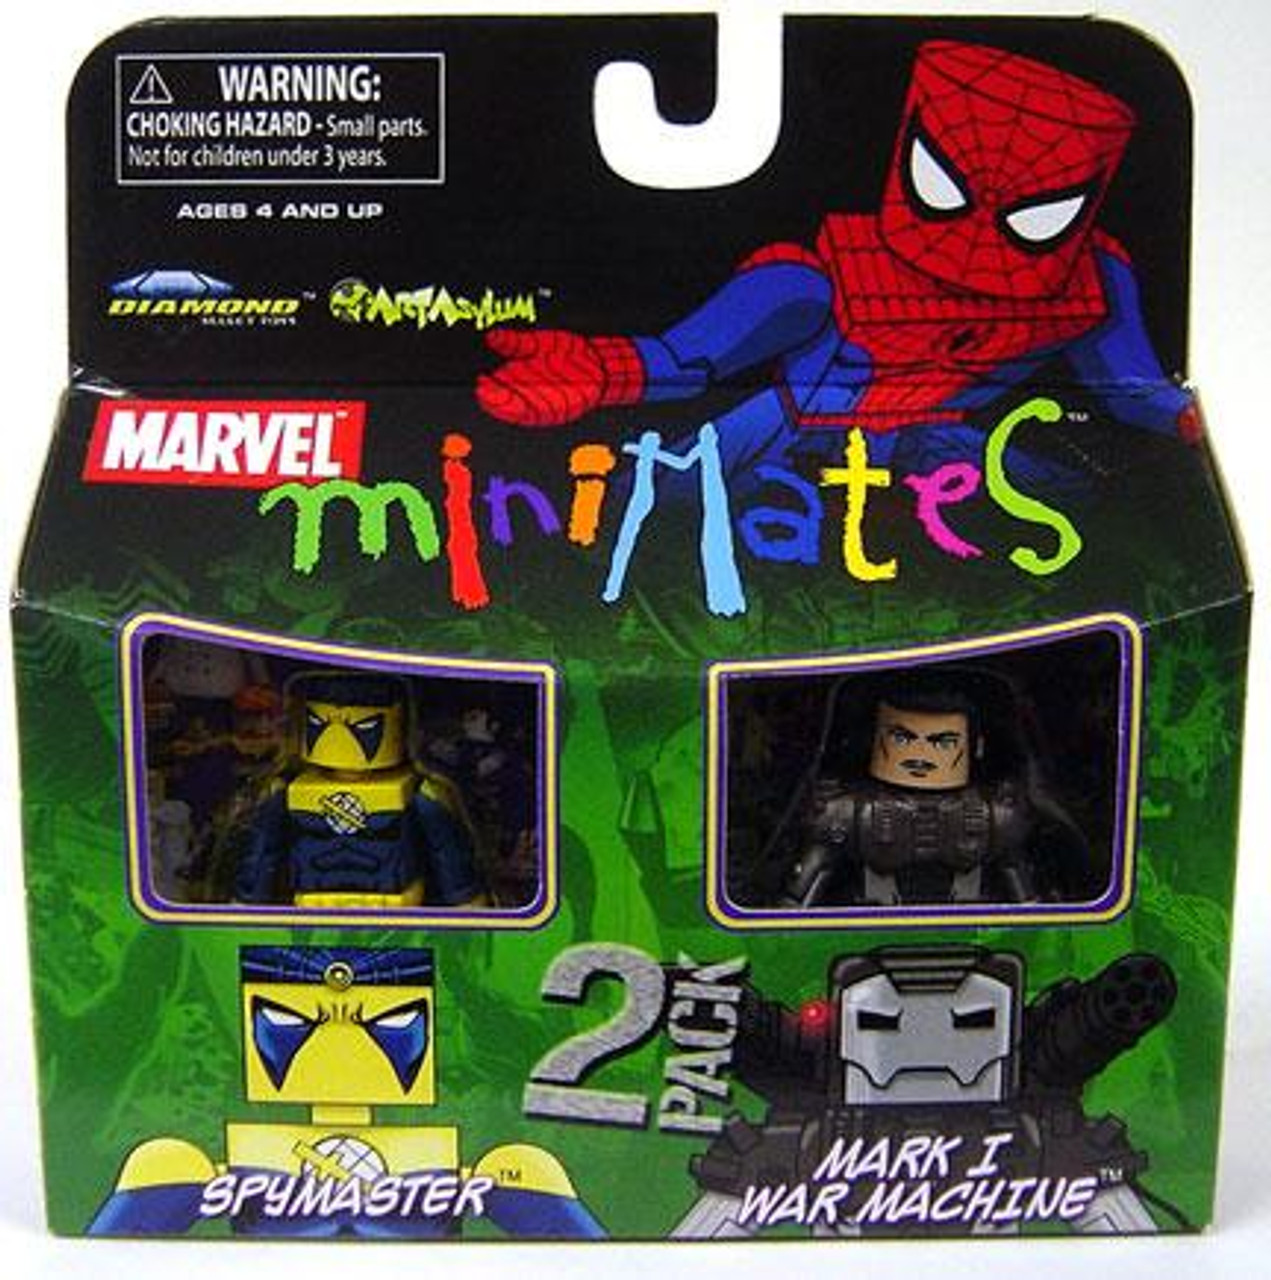 Marvel Minimates Series 23 Spymaster & Mark I War Machine Minifigure 2-Pack